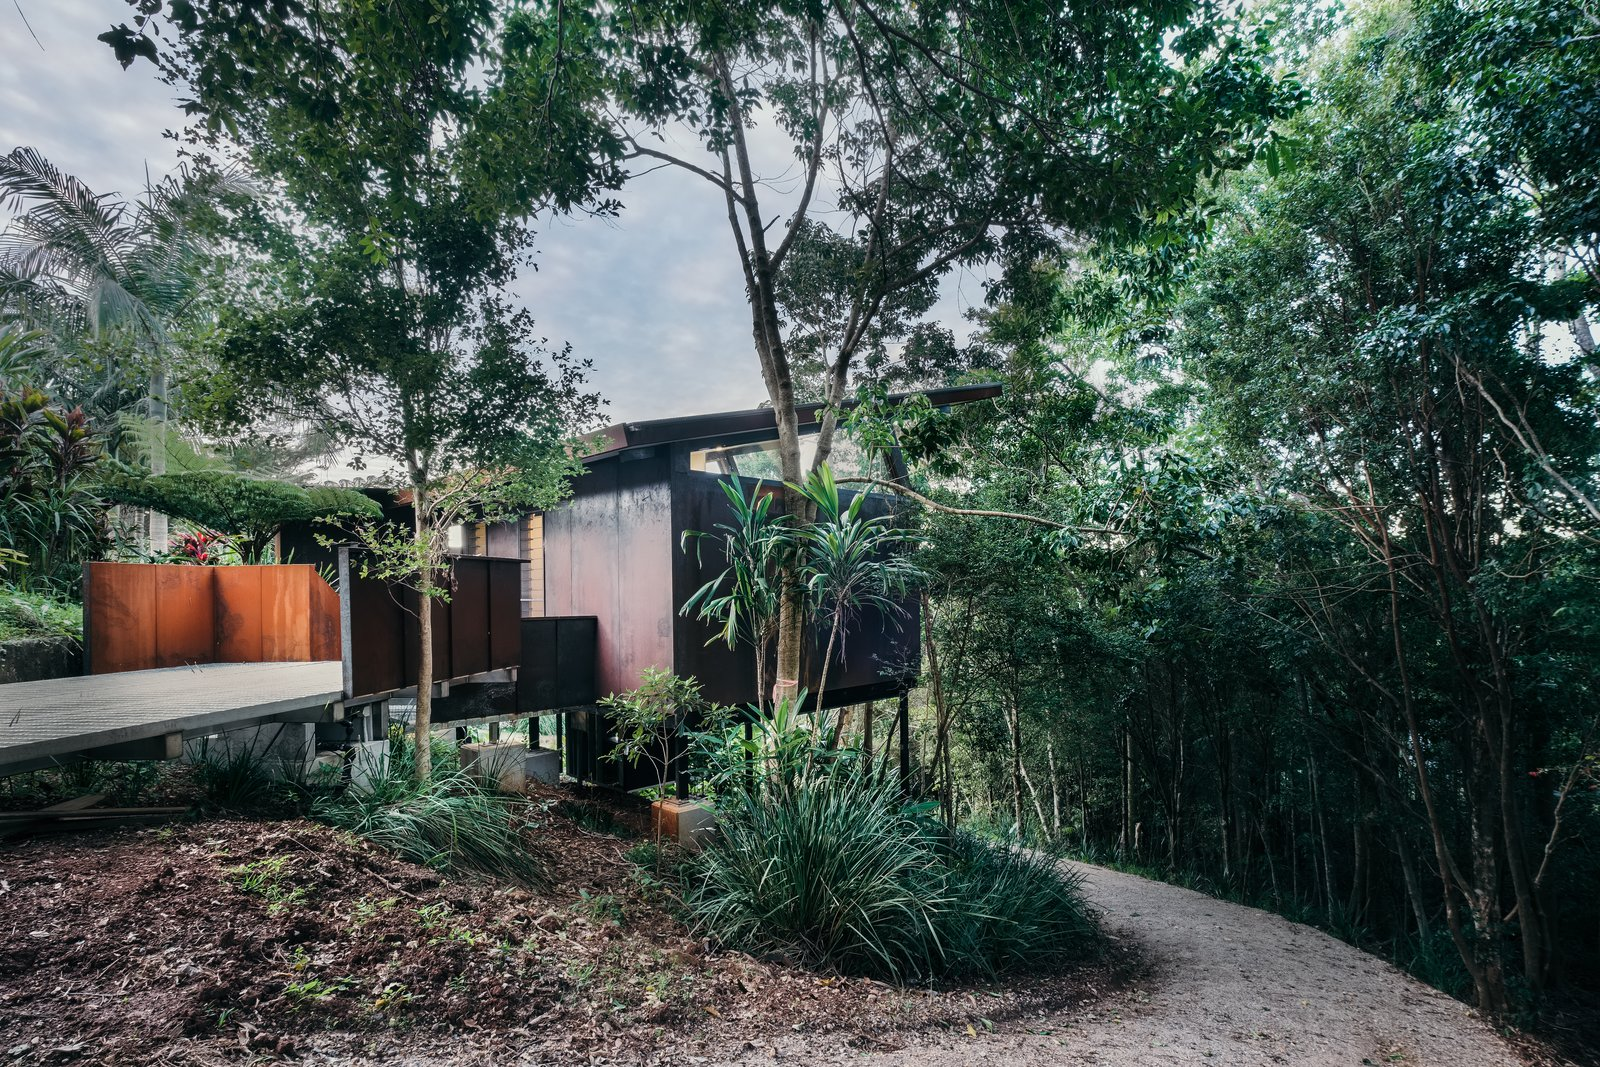 A Tiny Guesthouse Hides in a Lush Australian Rainforest